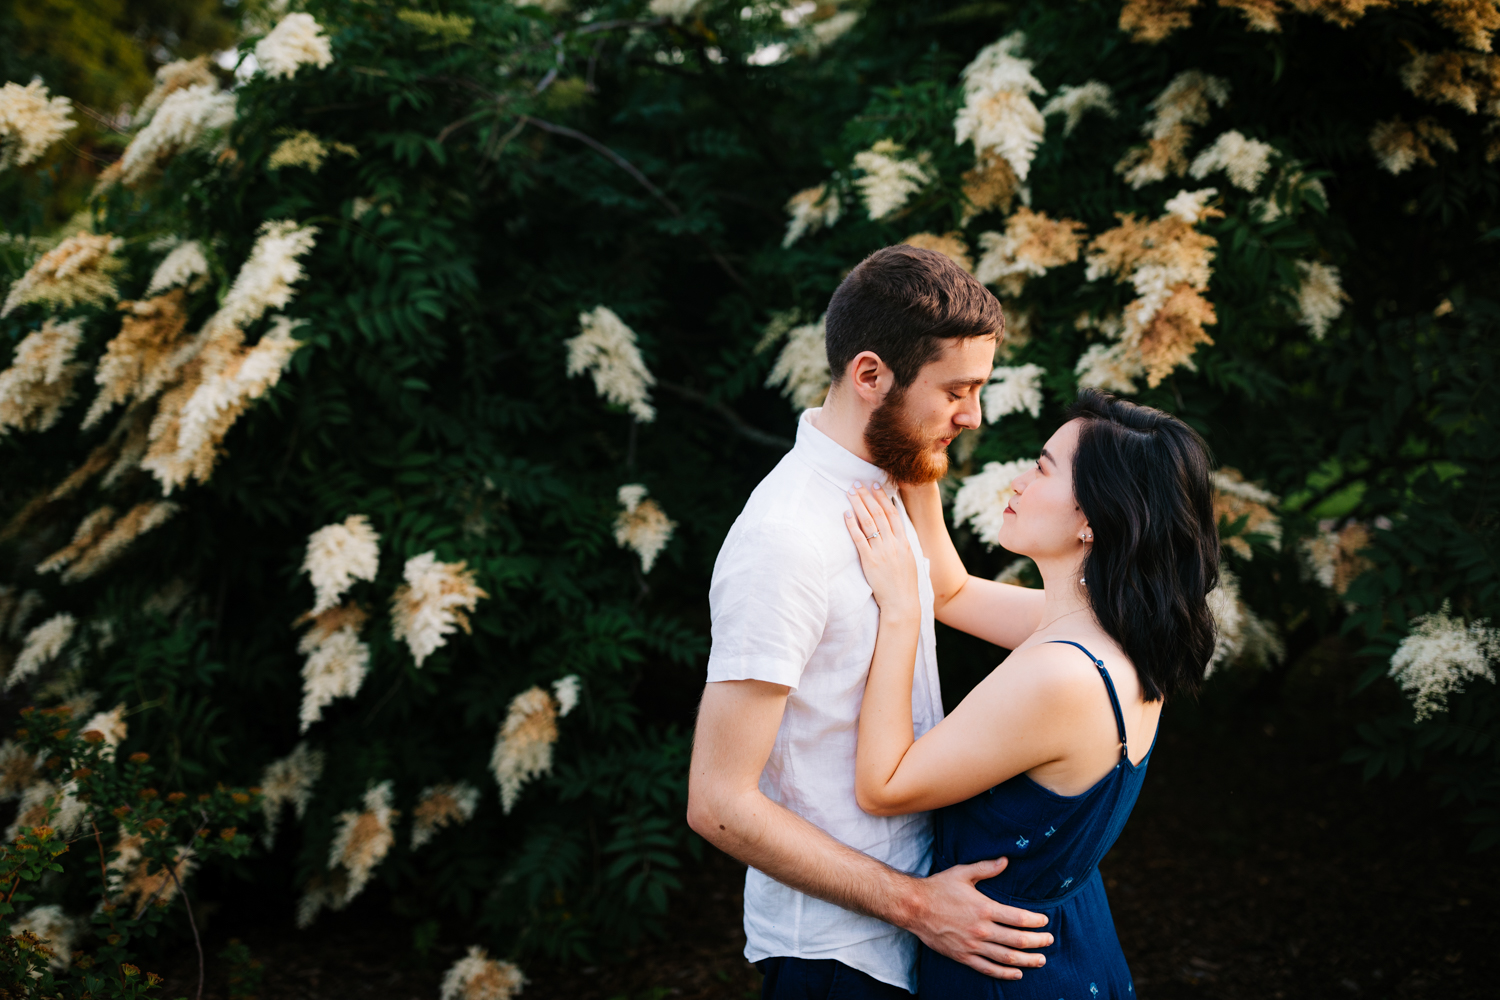 engagement-session-boston-masachusetts-fun-adventurous-natural-andrea-van-orsouw-photography-harvard-arnold-arboretum.jpg